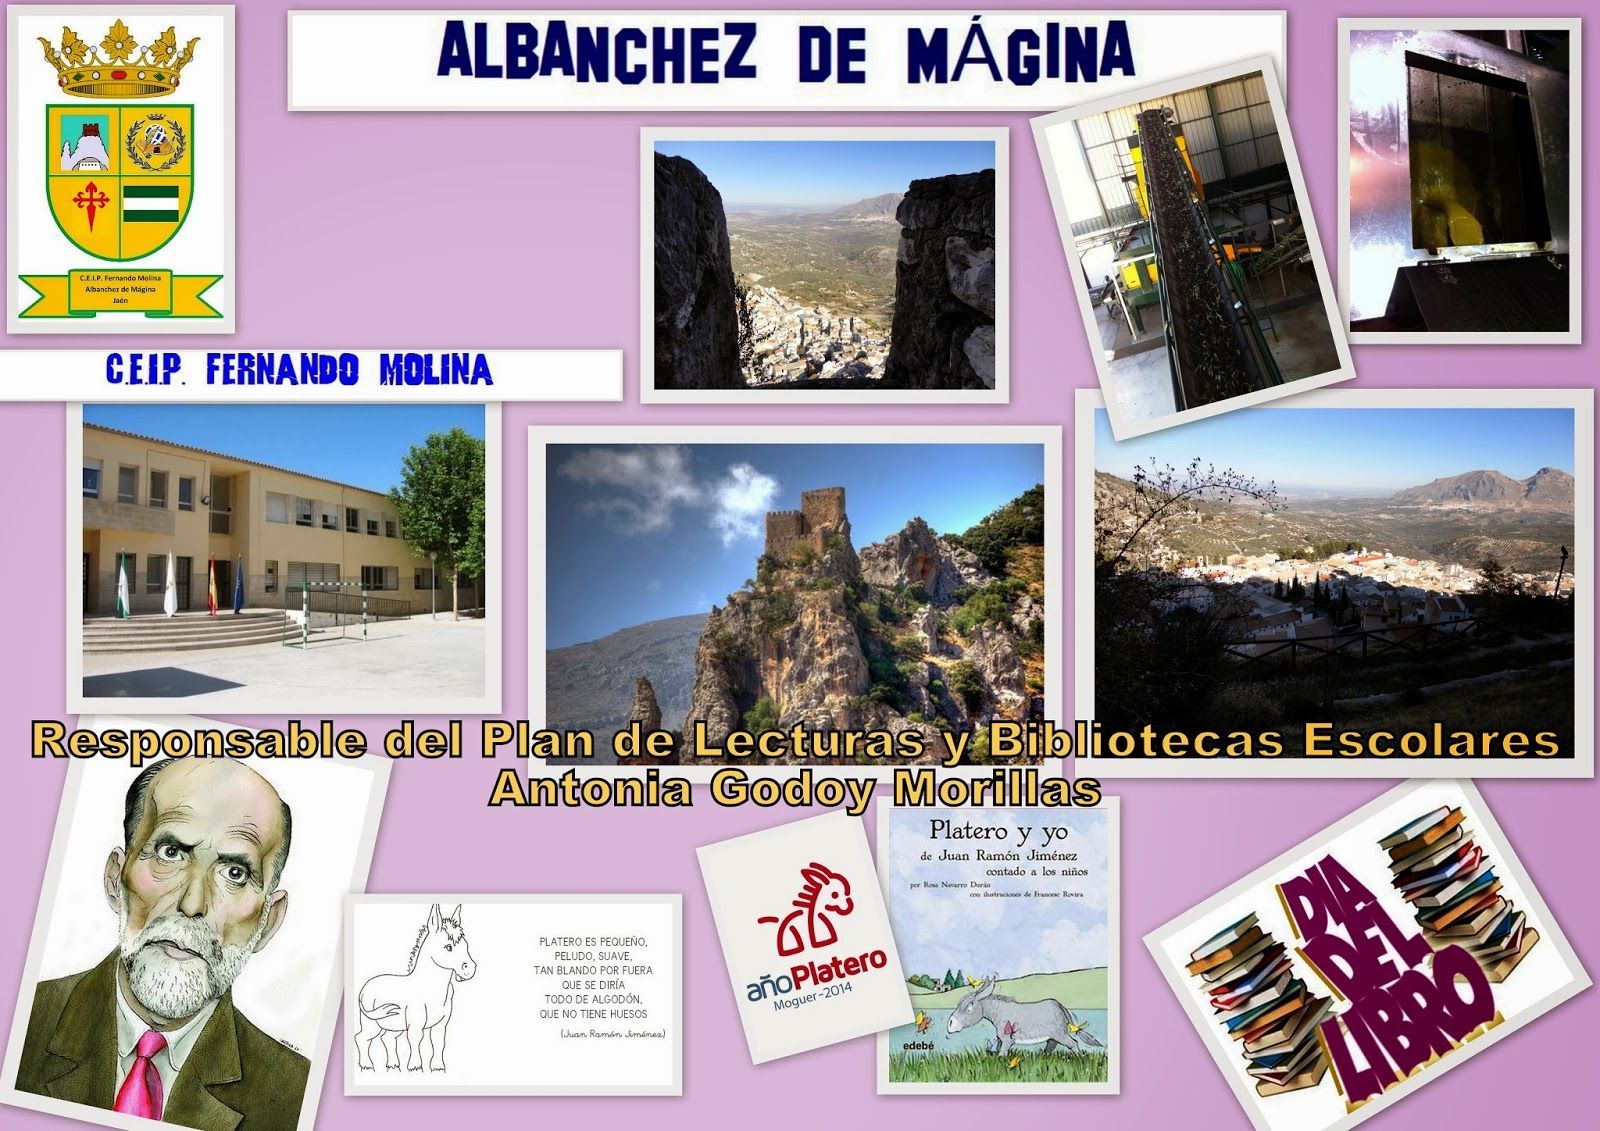 http://www.juntadeandalucia.es/averroes/centros-tic/21200025/myscrapbook/index.php?section=94&page=-1